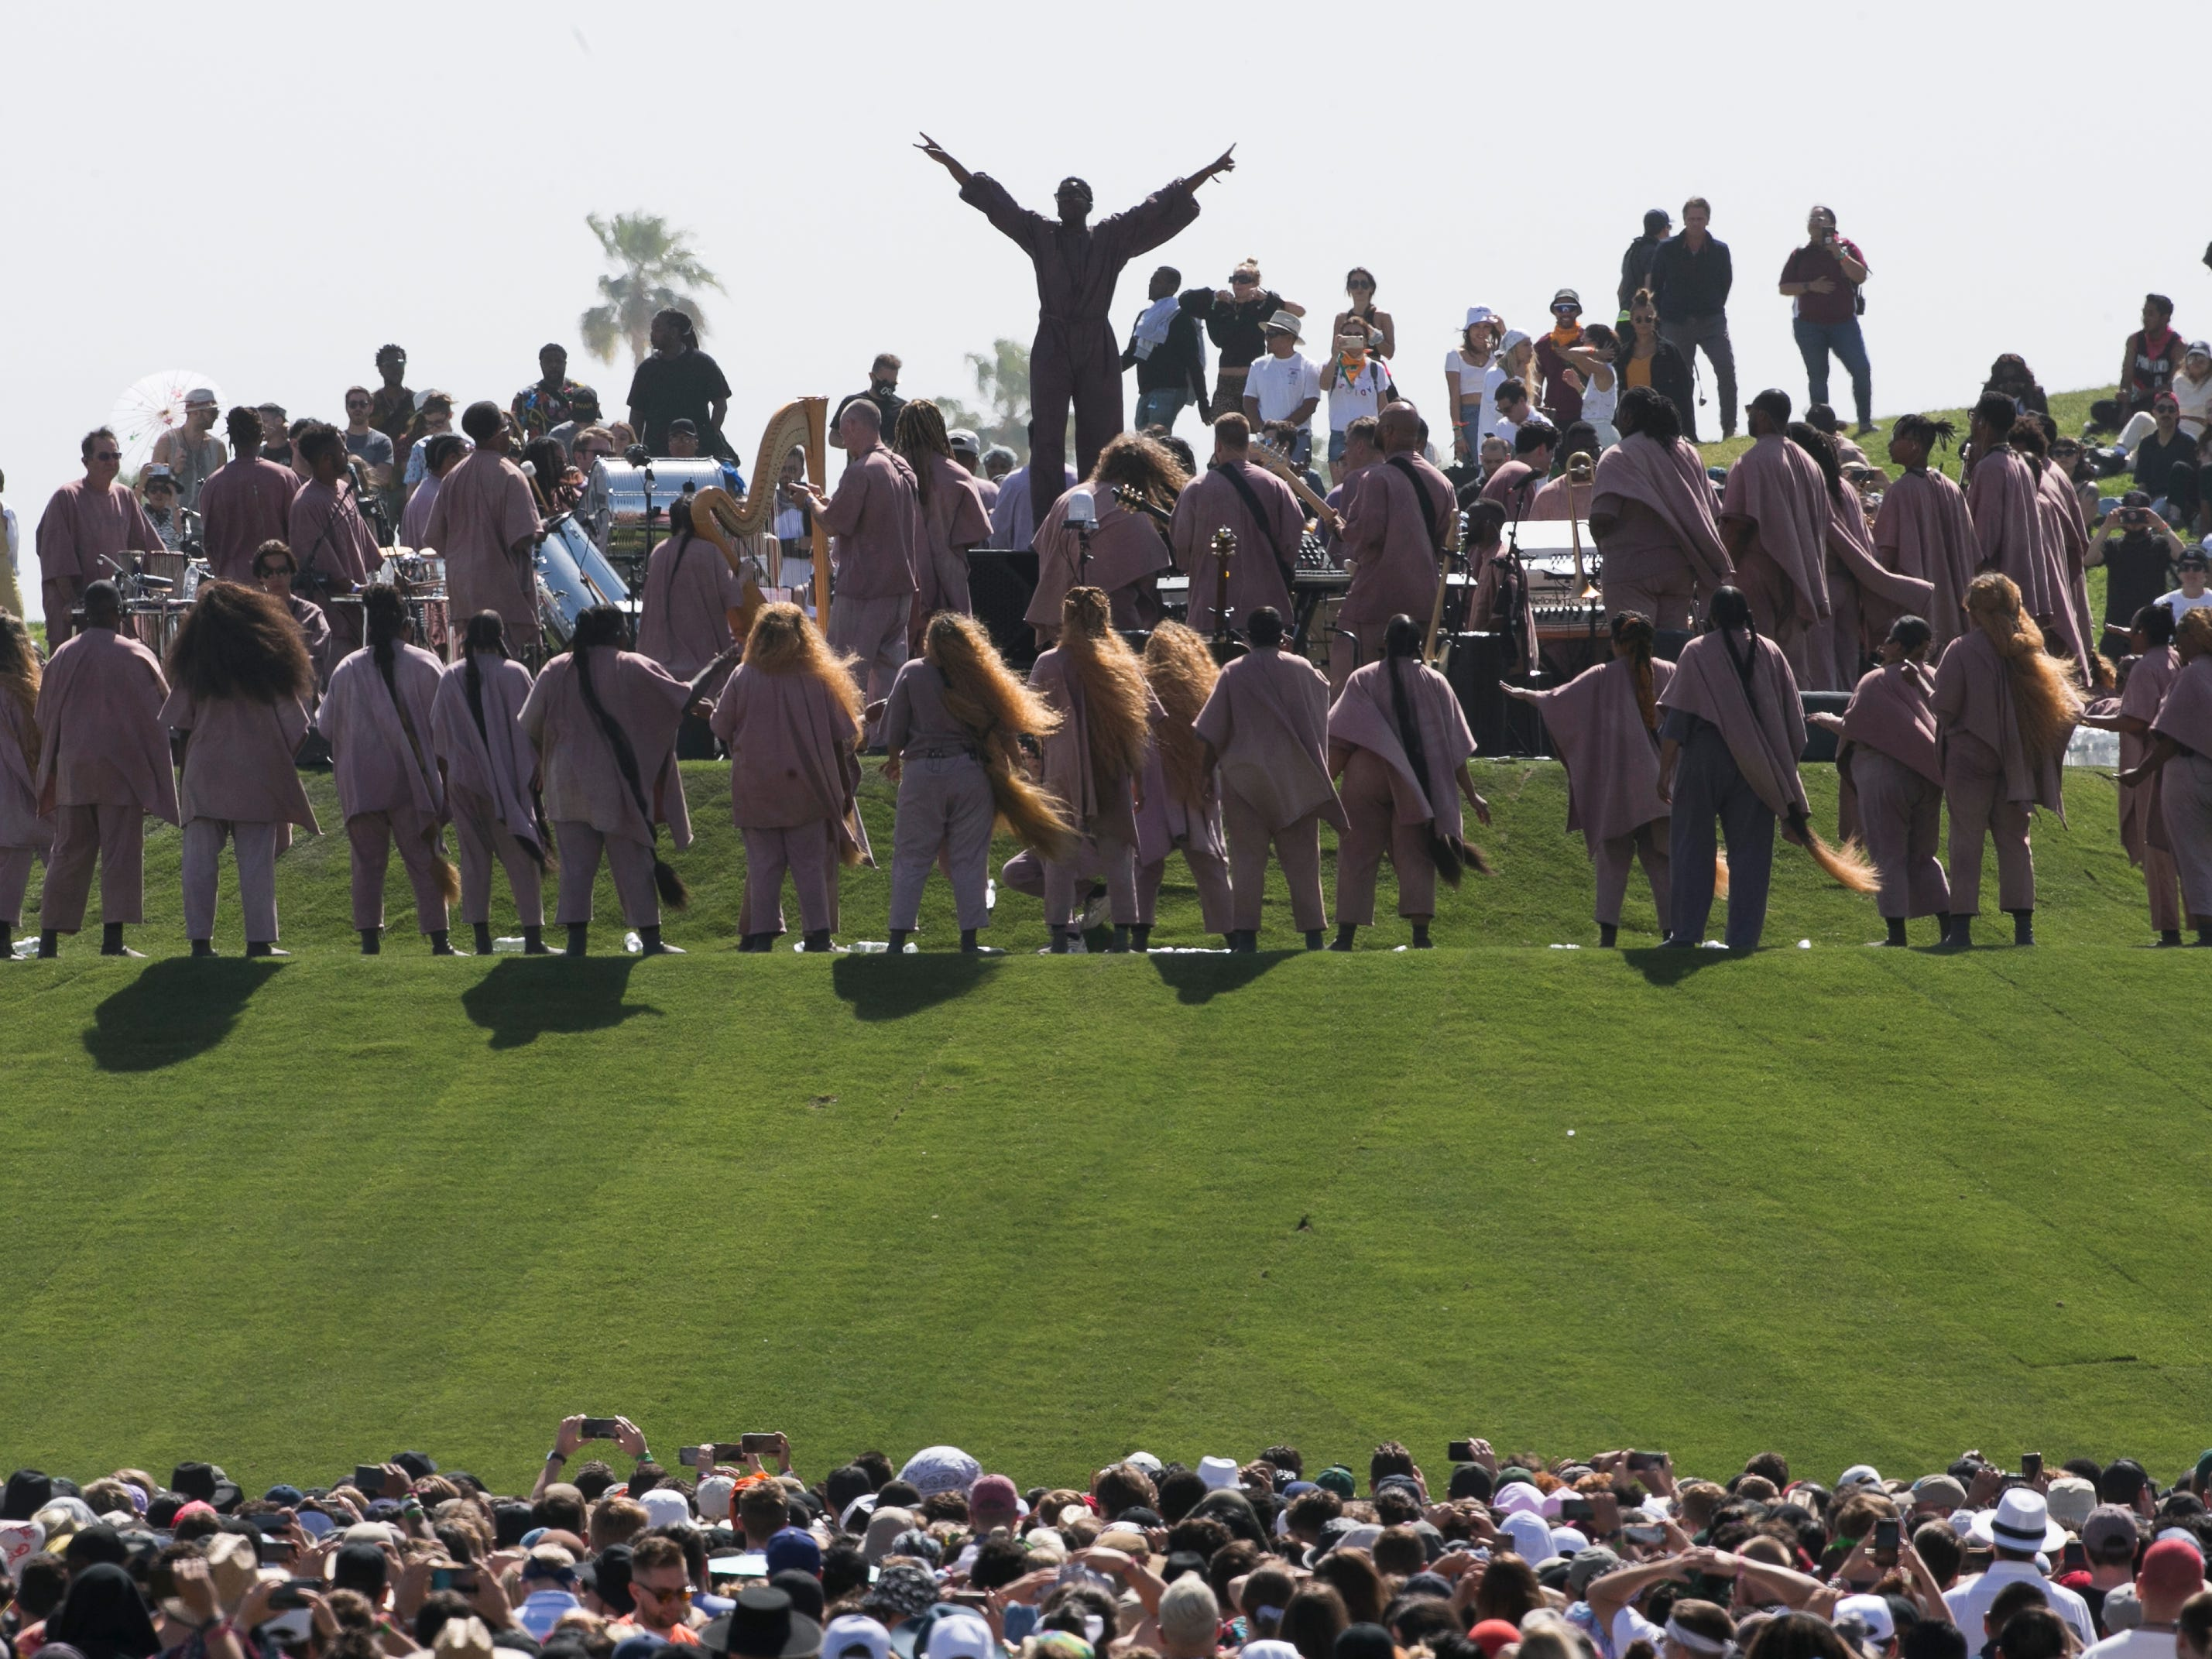 Kanye West's Easter Sunday Service is performed at the Coachella Valley Music and Arts Festival in Indio, Calif. on Sun. April 21, 2019. The performance could be heard and seen from outside the festival grounds.